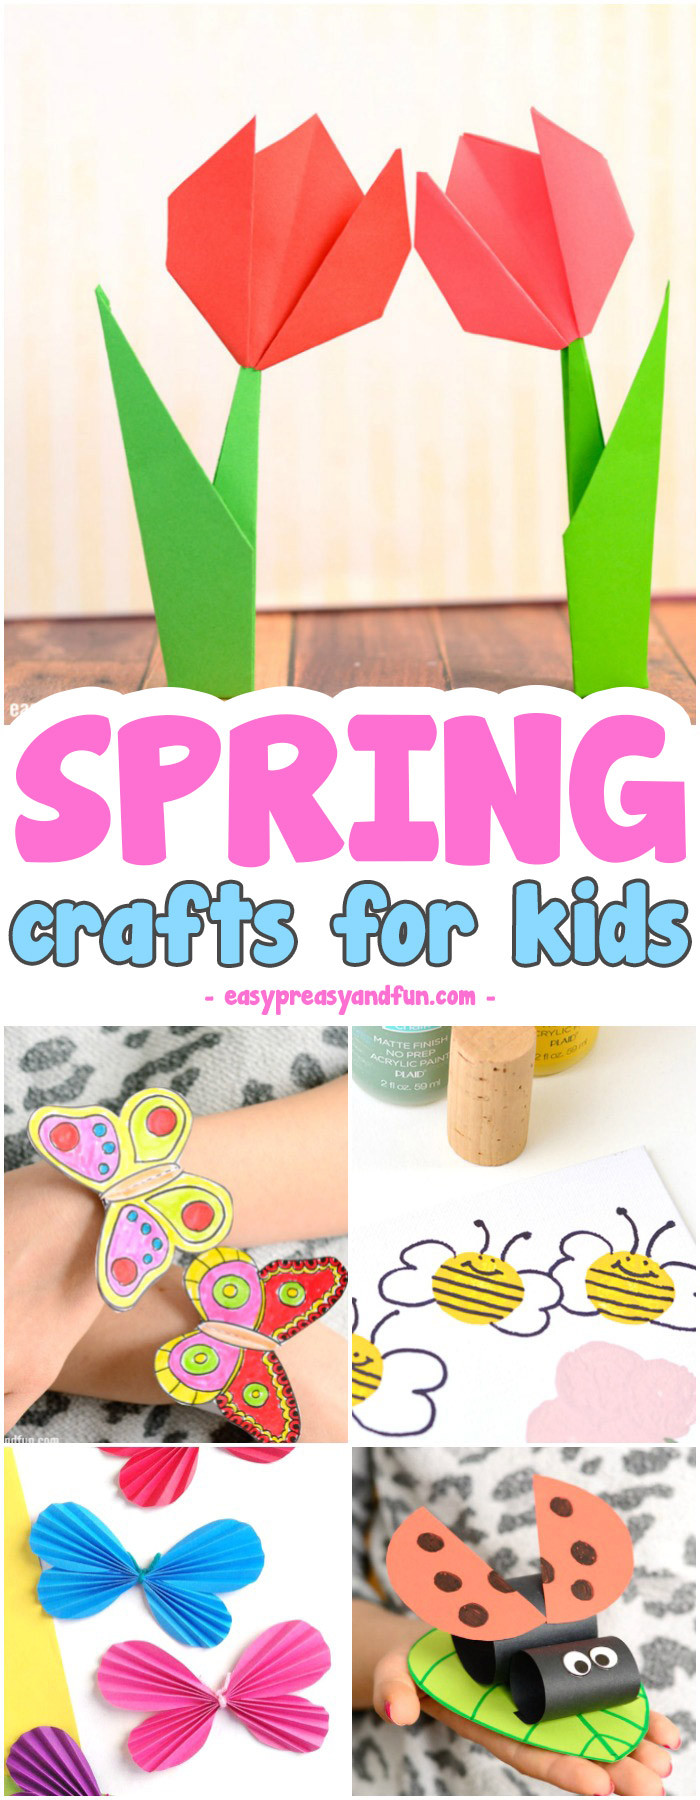 Best ideas about Kids Craft Ideas . Save or Pin Spring Crafts for Kids Art and Craft Project Ideas for Now.